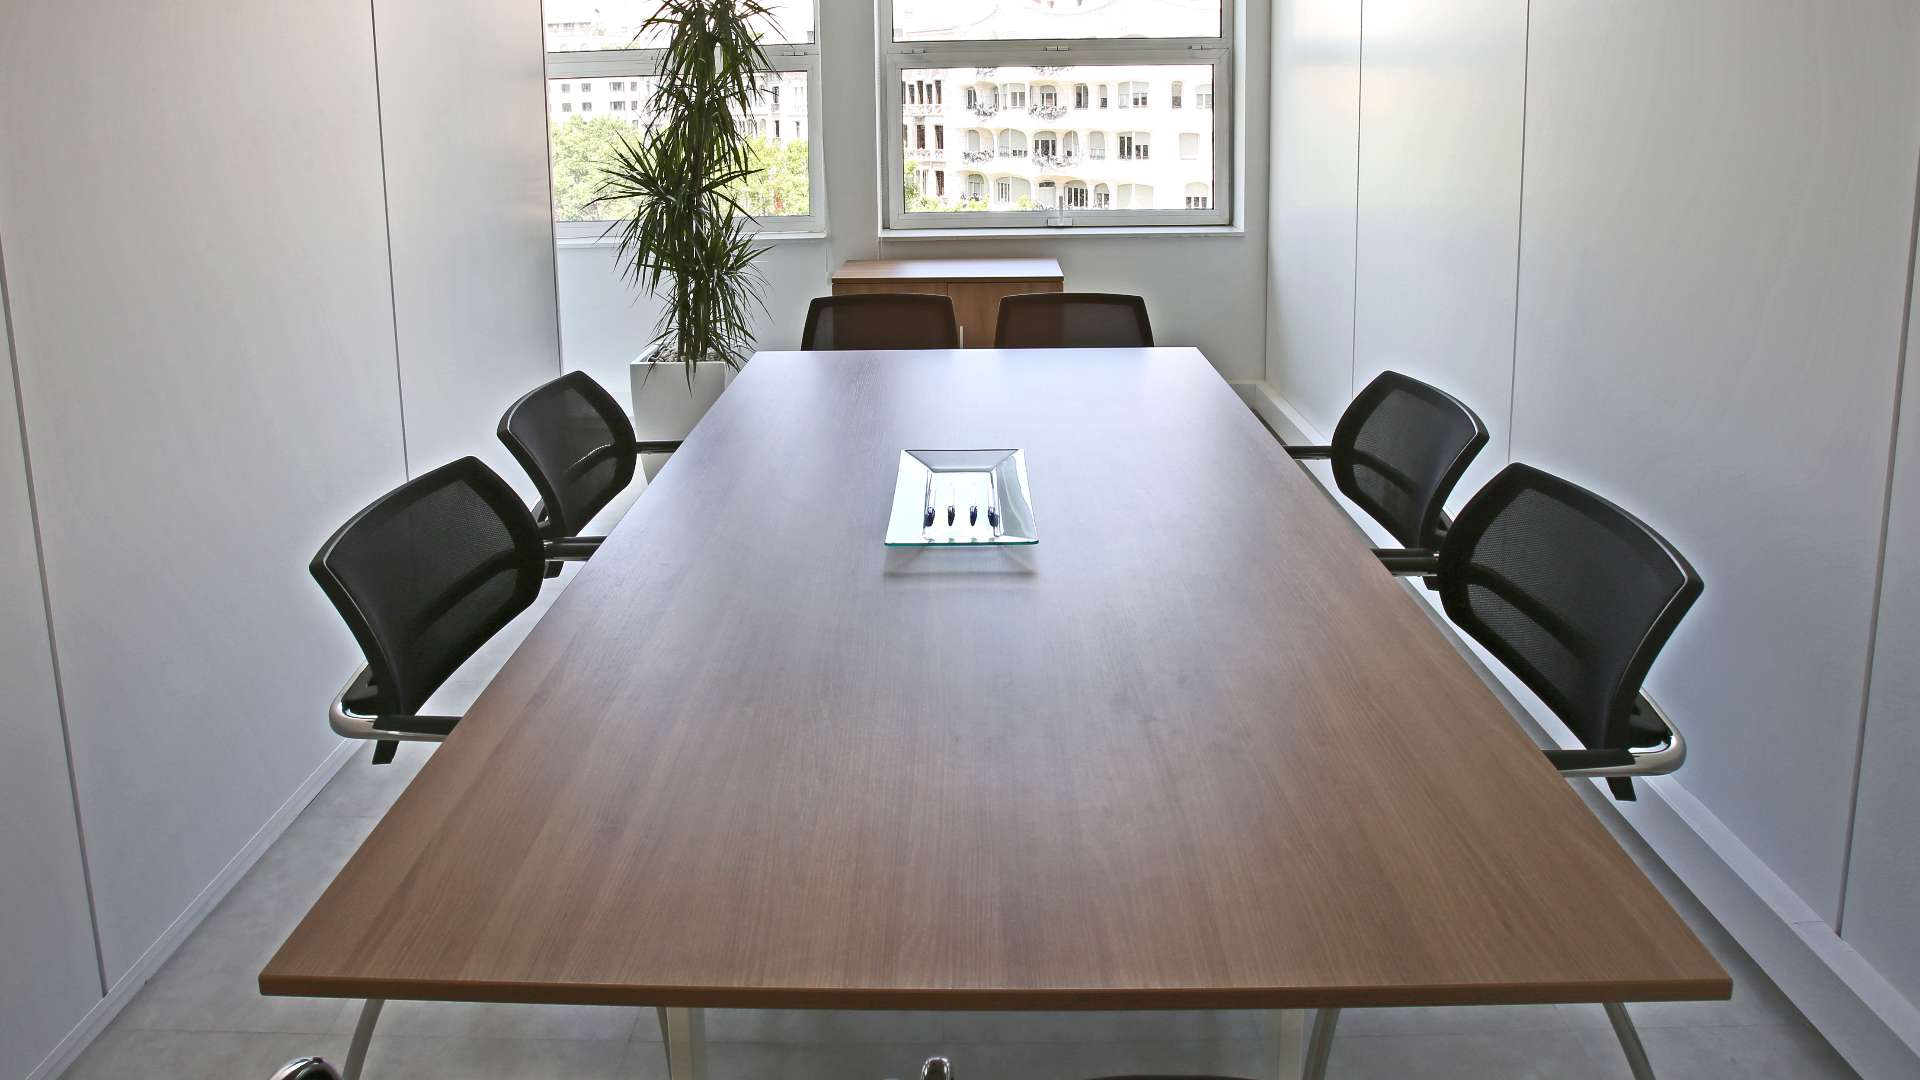 Picture of LA PEDRERA, a meeting room in the undefined undefined